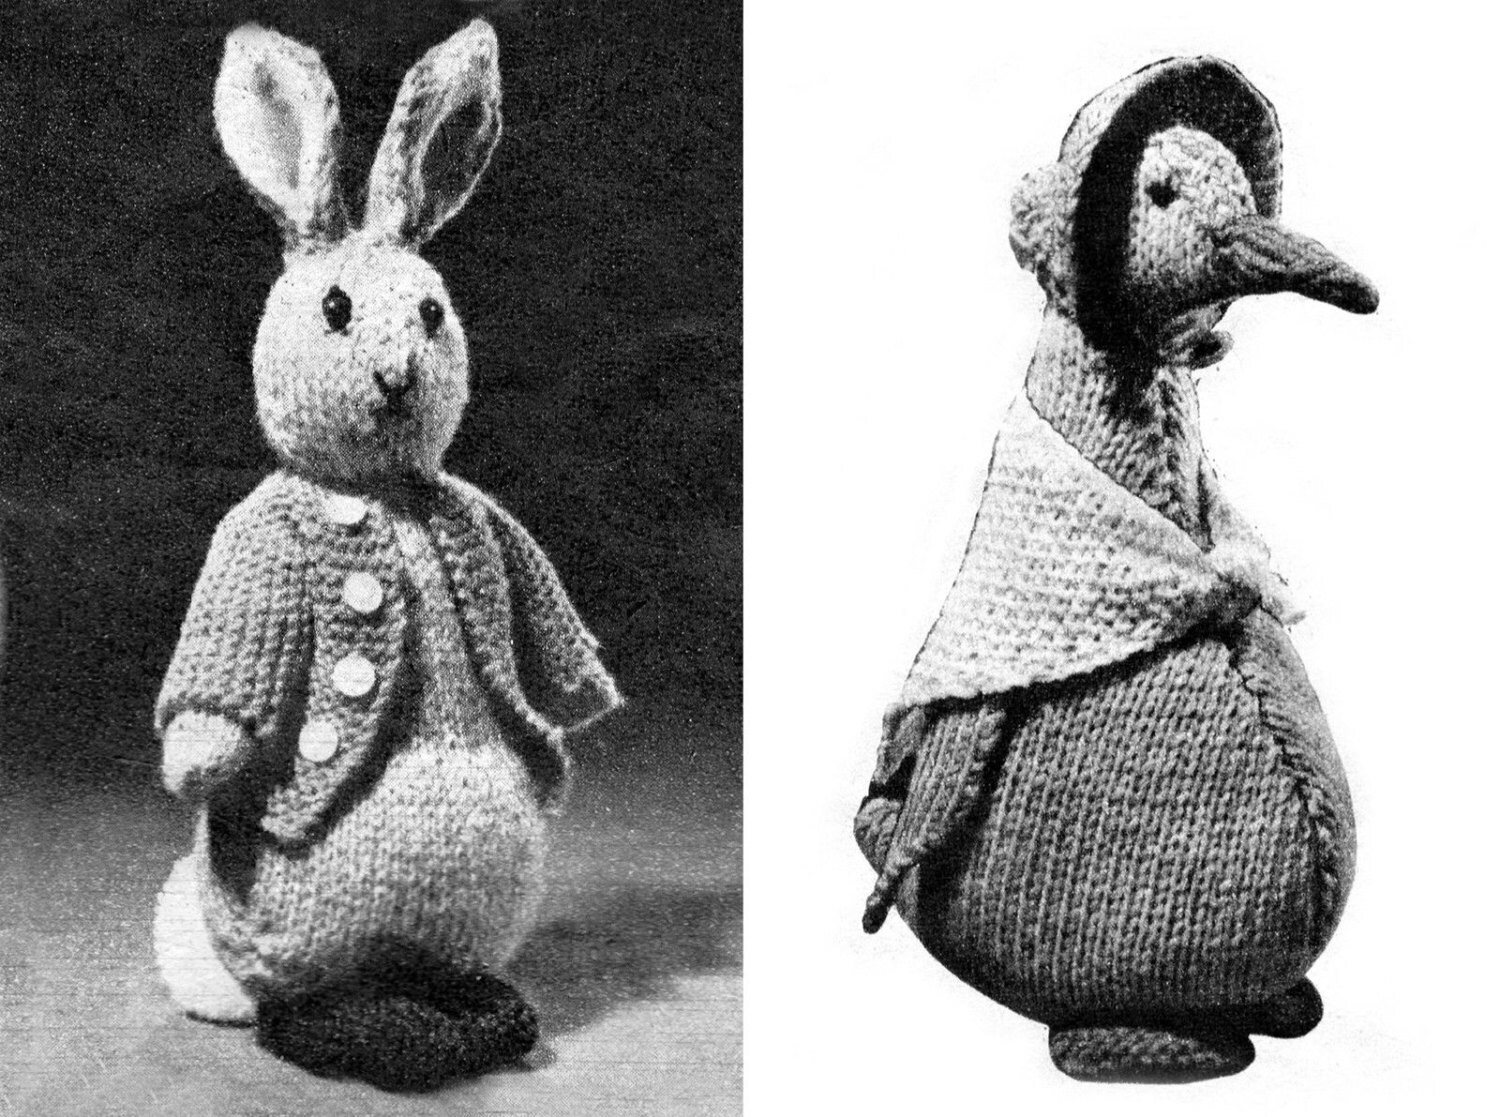 Knitting Pattern For Jemima Puddle Duck : PDF Peter Rabbit Jemima Puddle Duck Knitting Patterns Rare